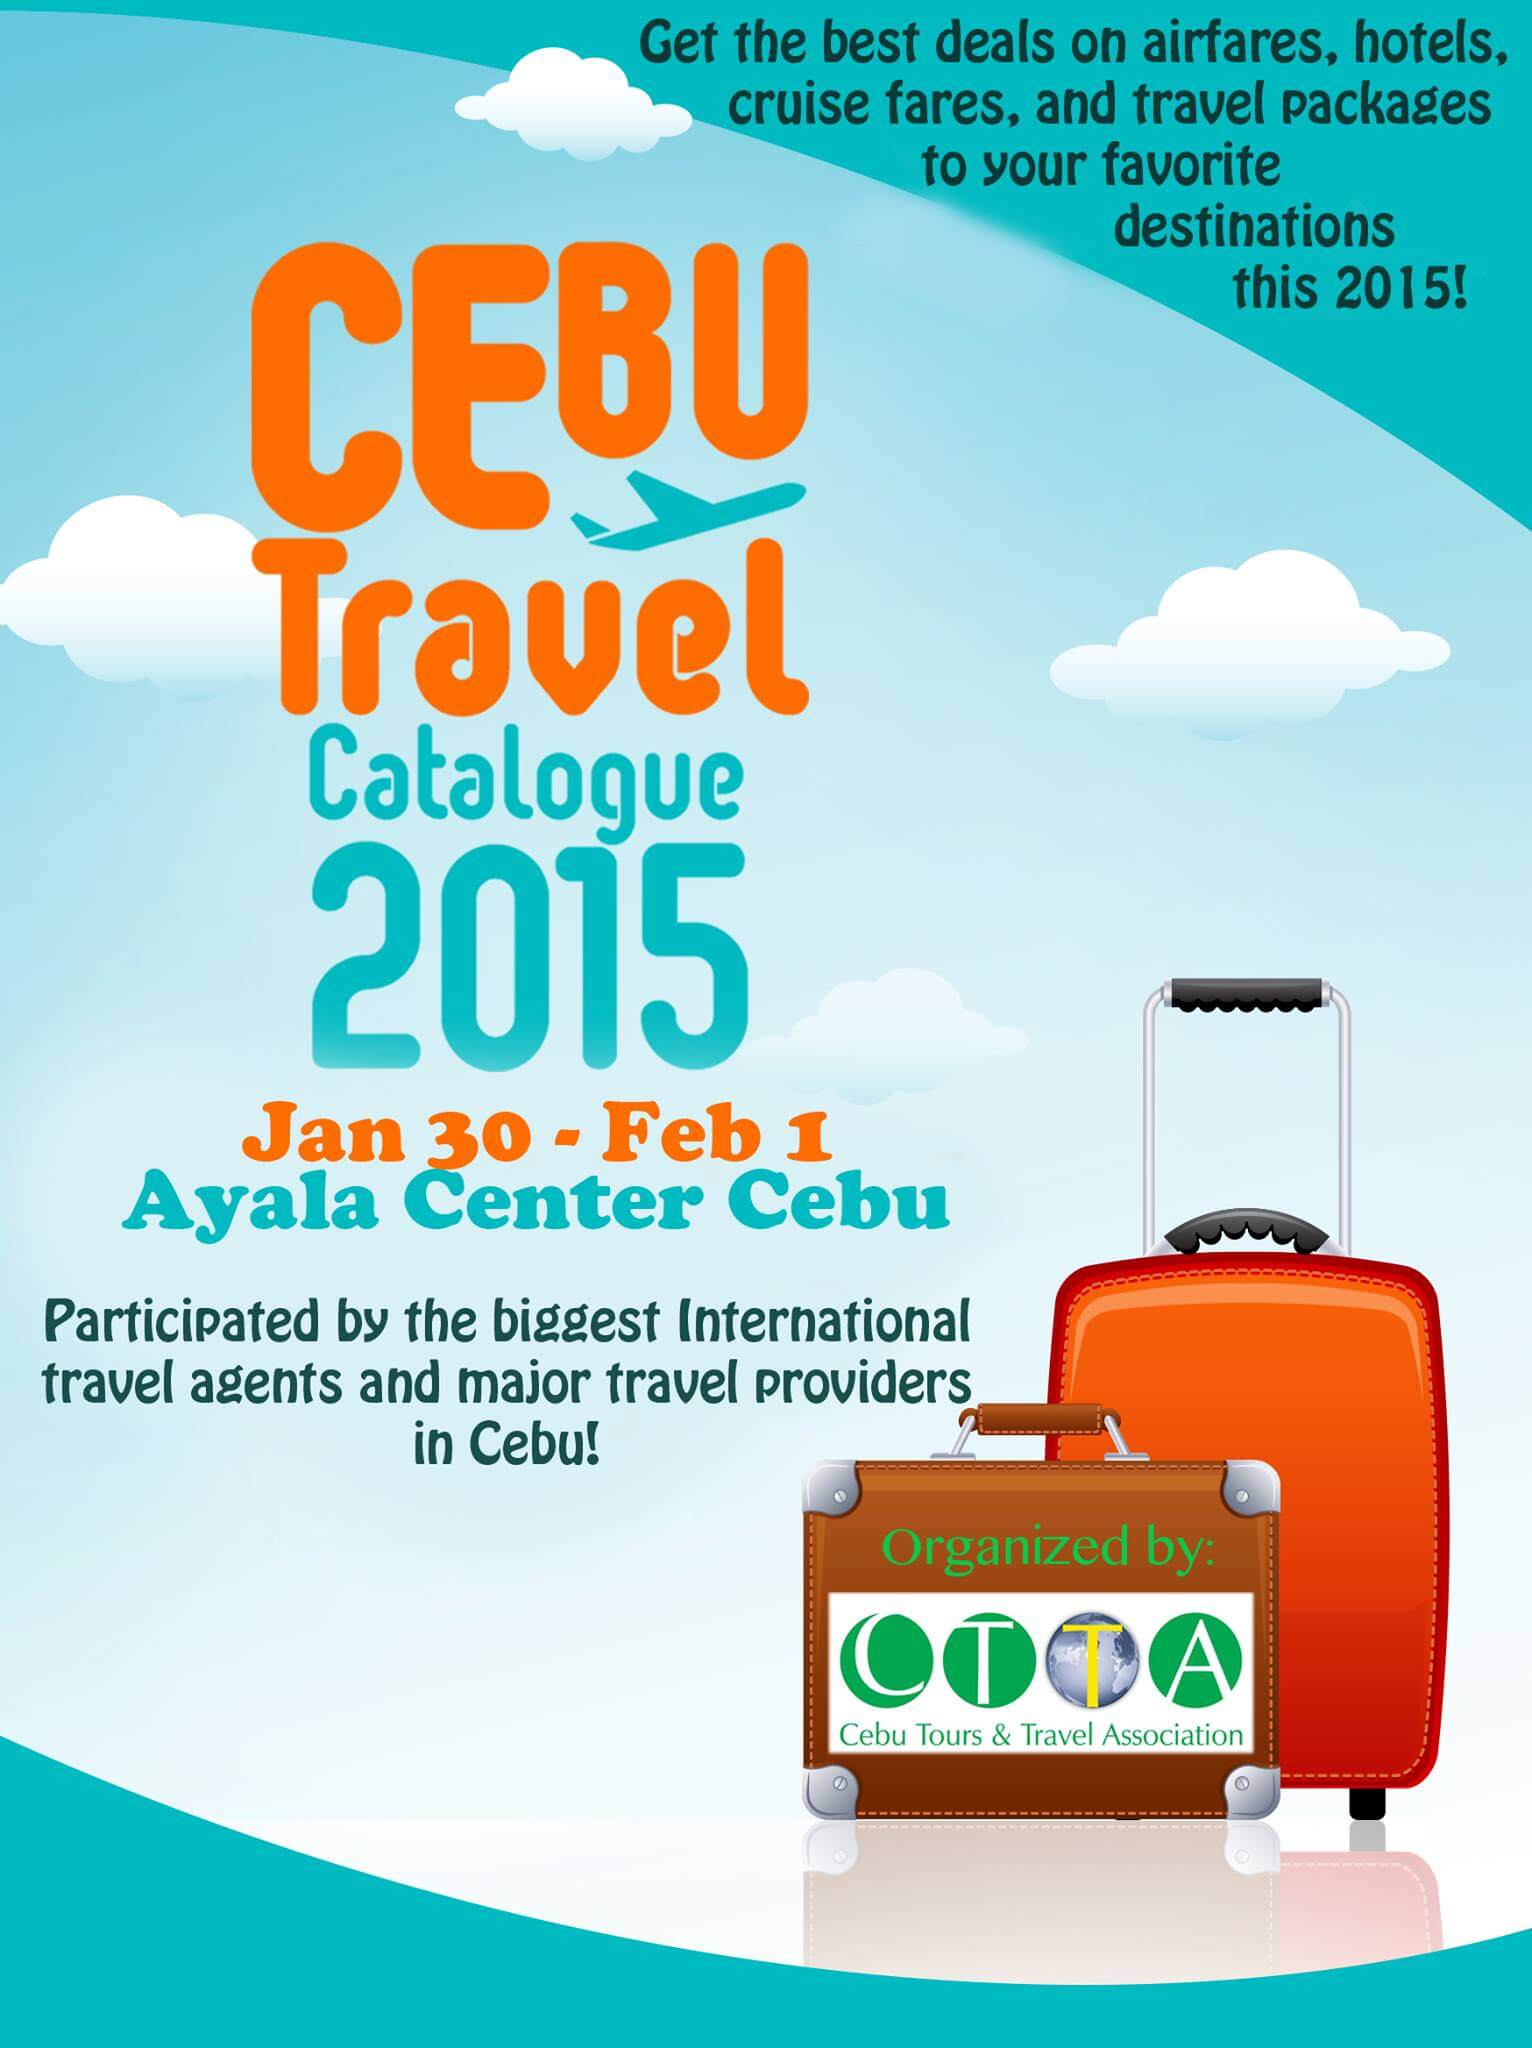 cebu travel catalogue 2015 offers low airfares discounted tour packages